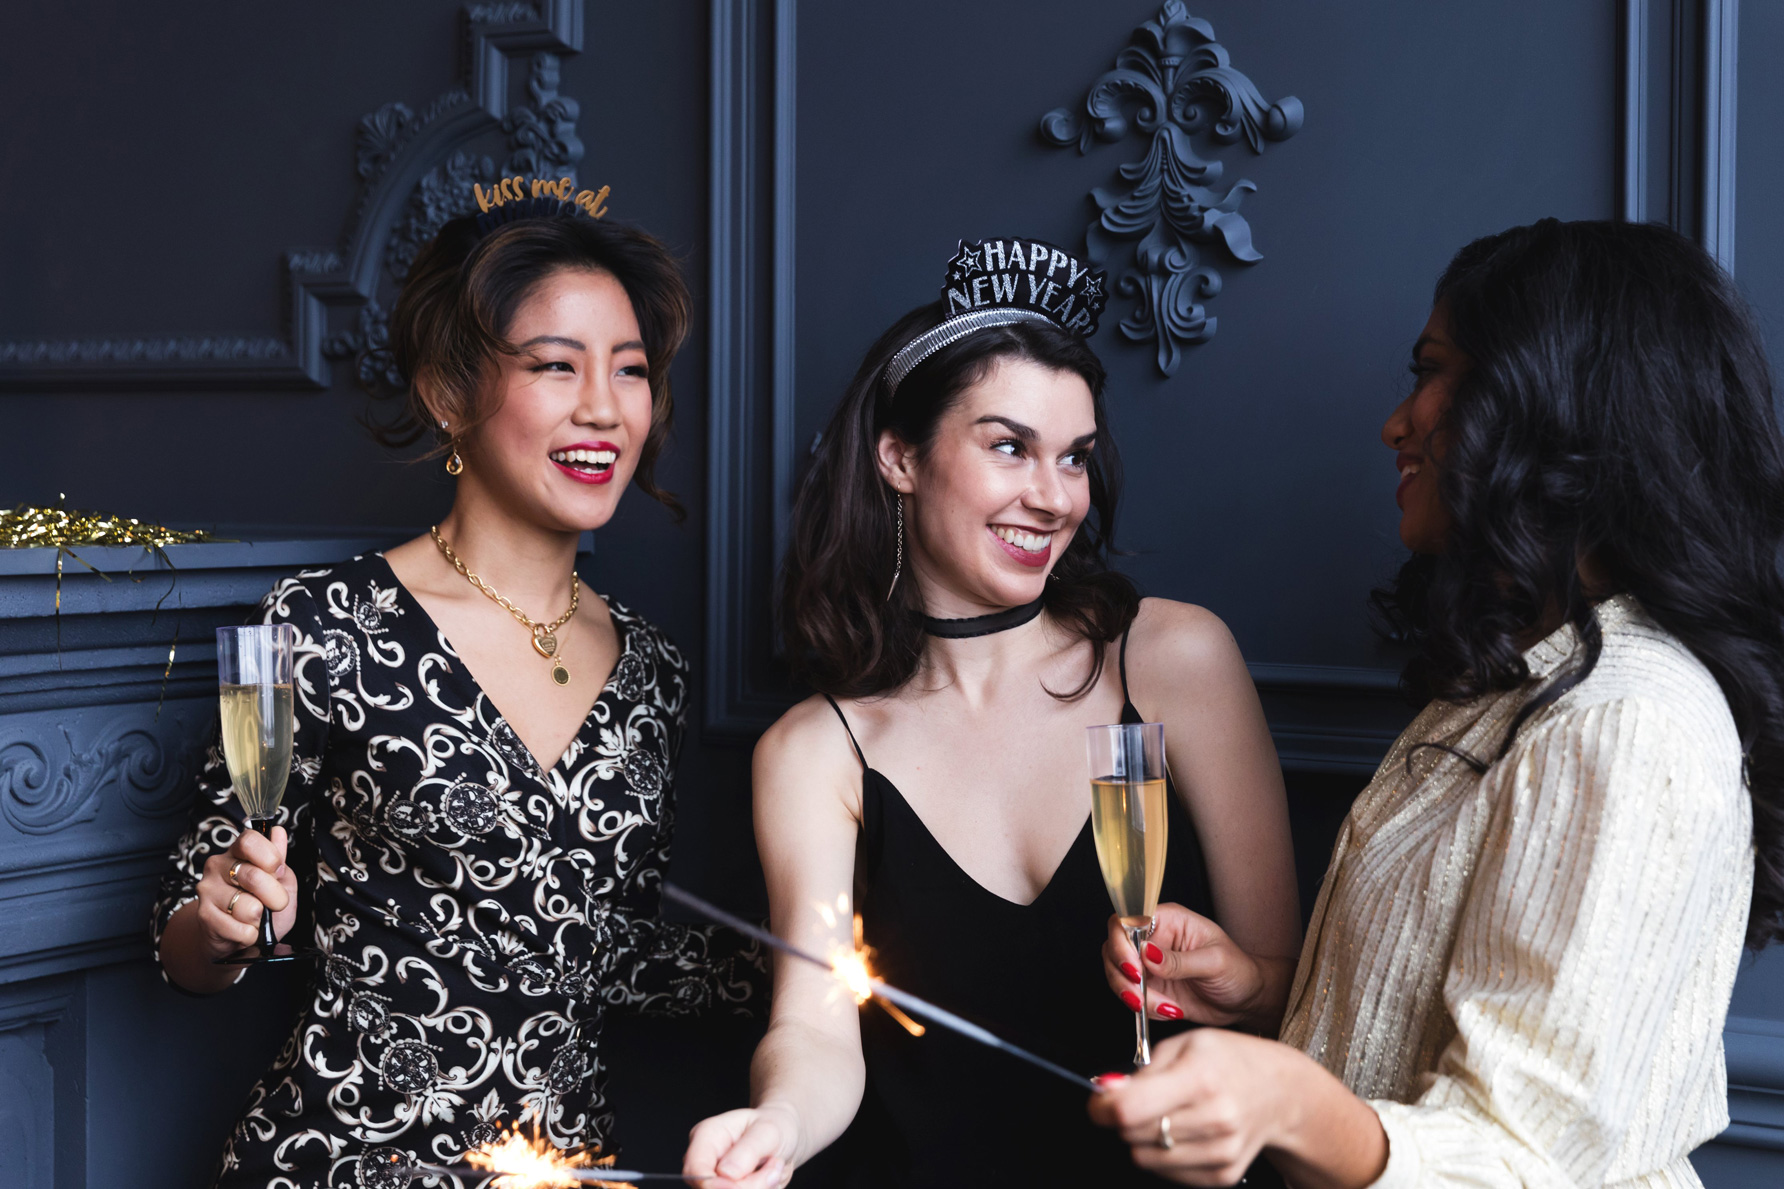 Three women at a party celebrating new year.